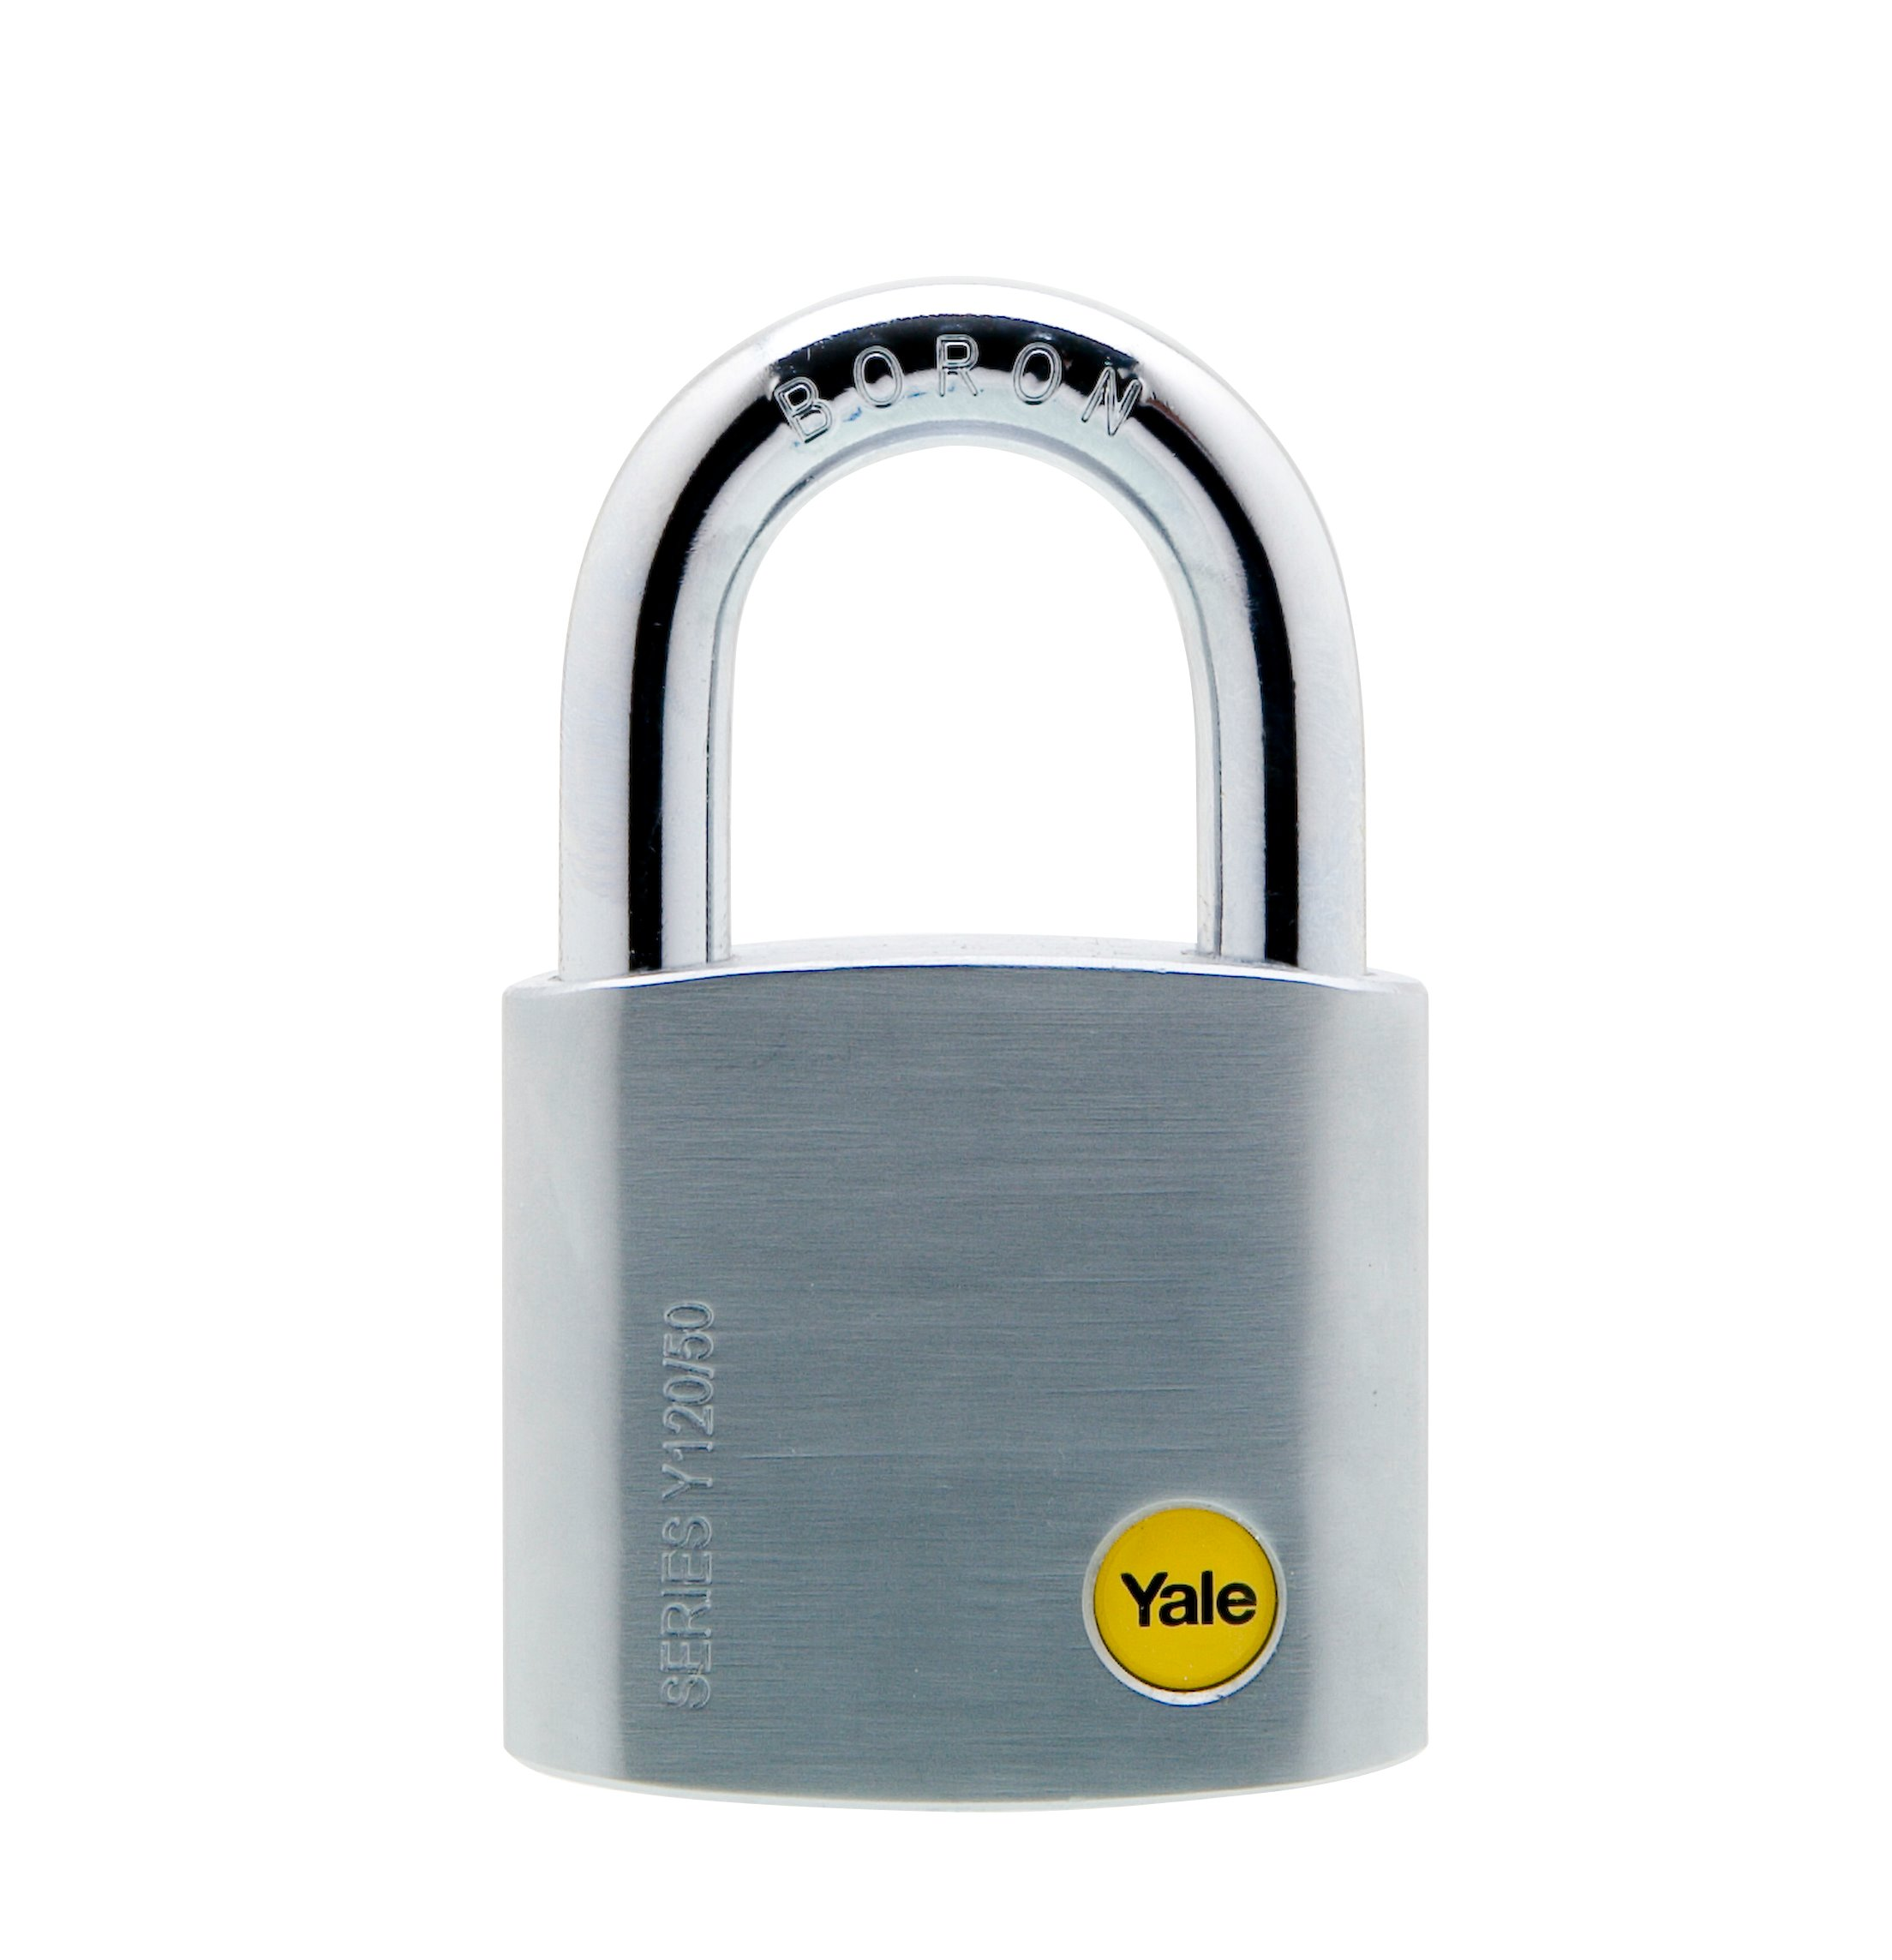 Y210 Open Shackle High Security Steel Padlock